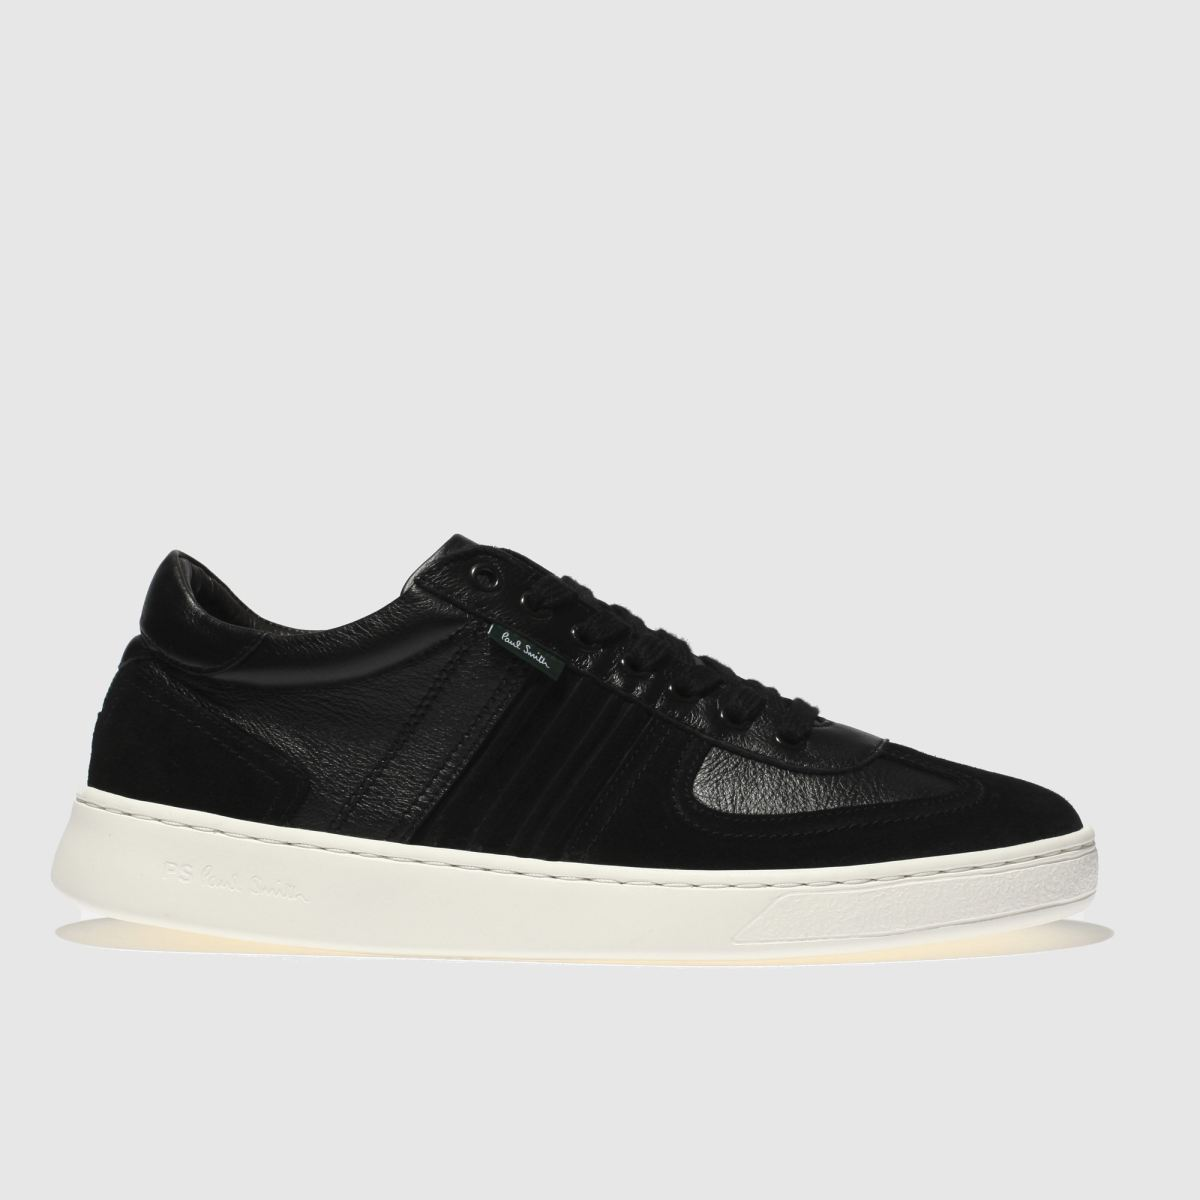 paul smith shoe ps Paul Smith Shoe Ps Black Reemo Trainers